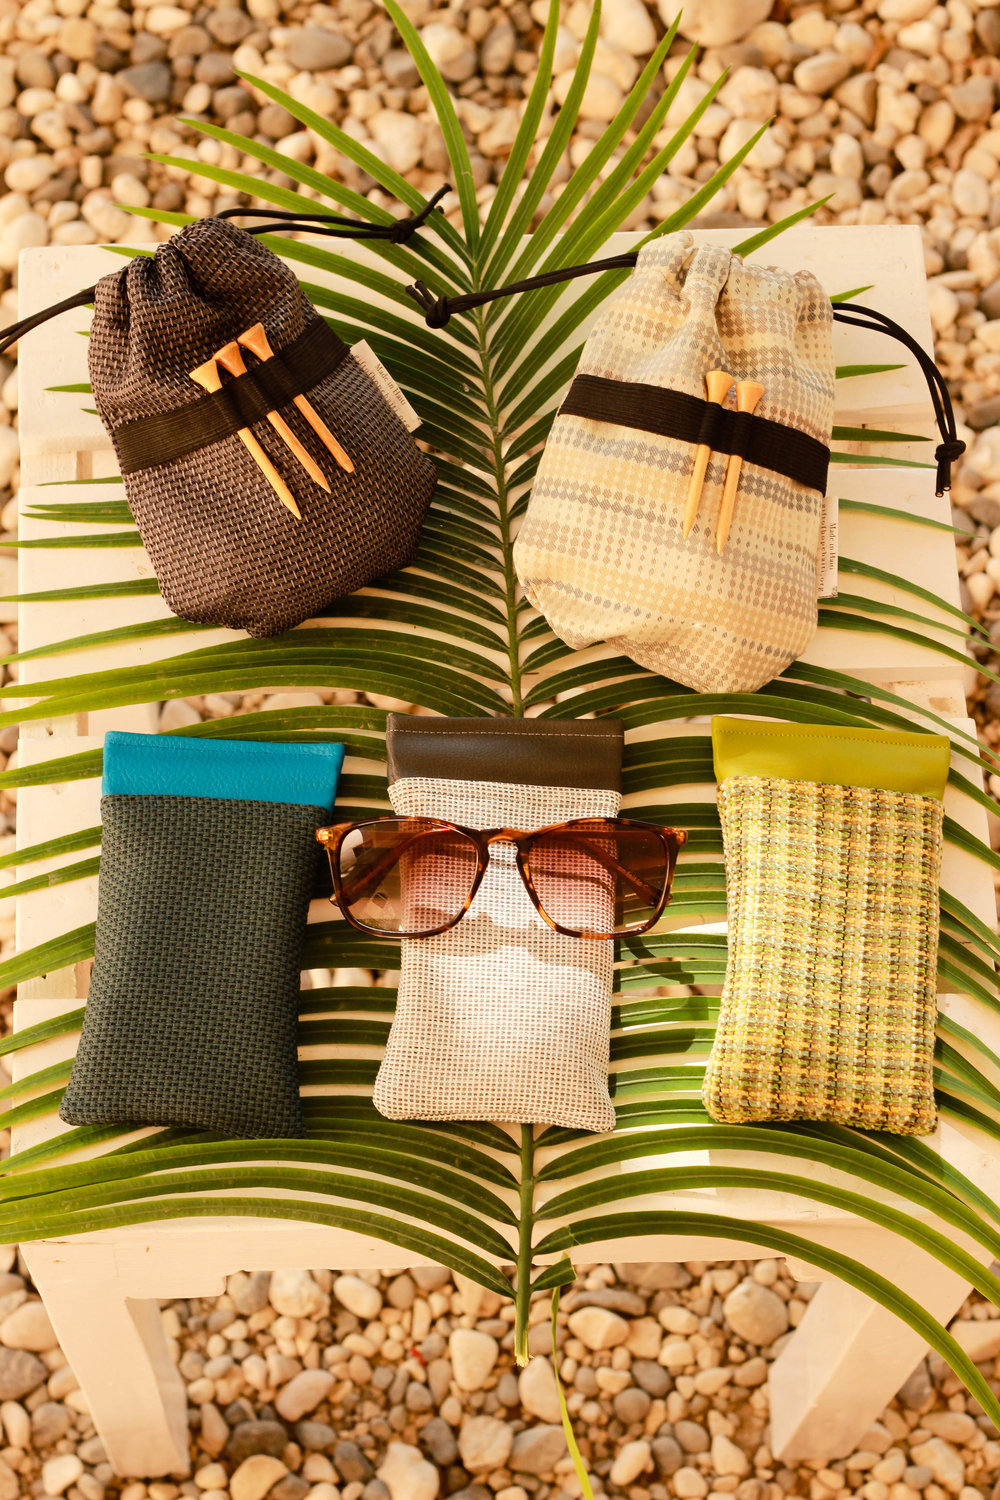 Golf ball/tee bags, glasses cases, tote bags and wine bags have been the top sellers for business gifts!